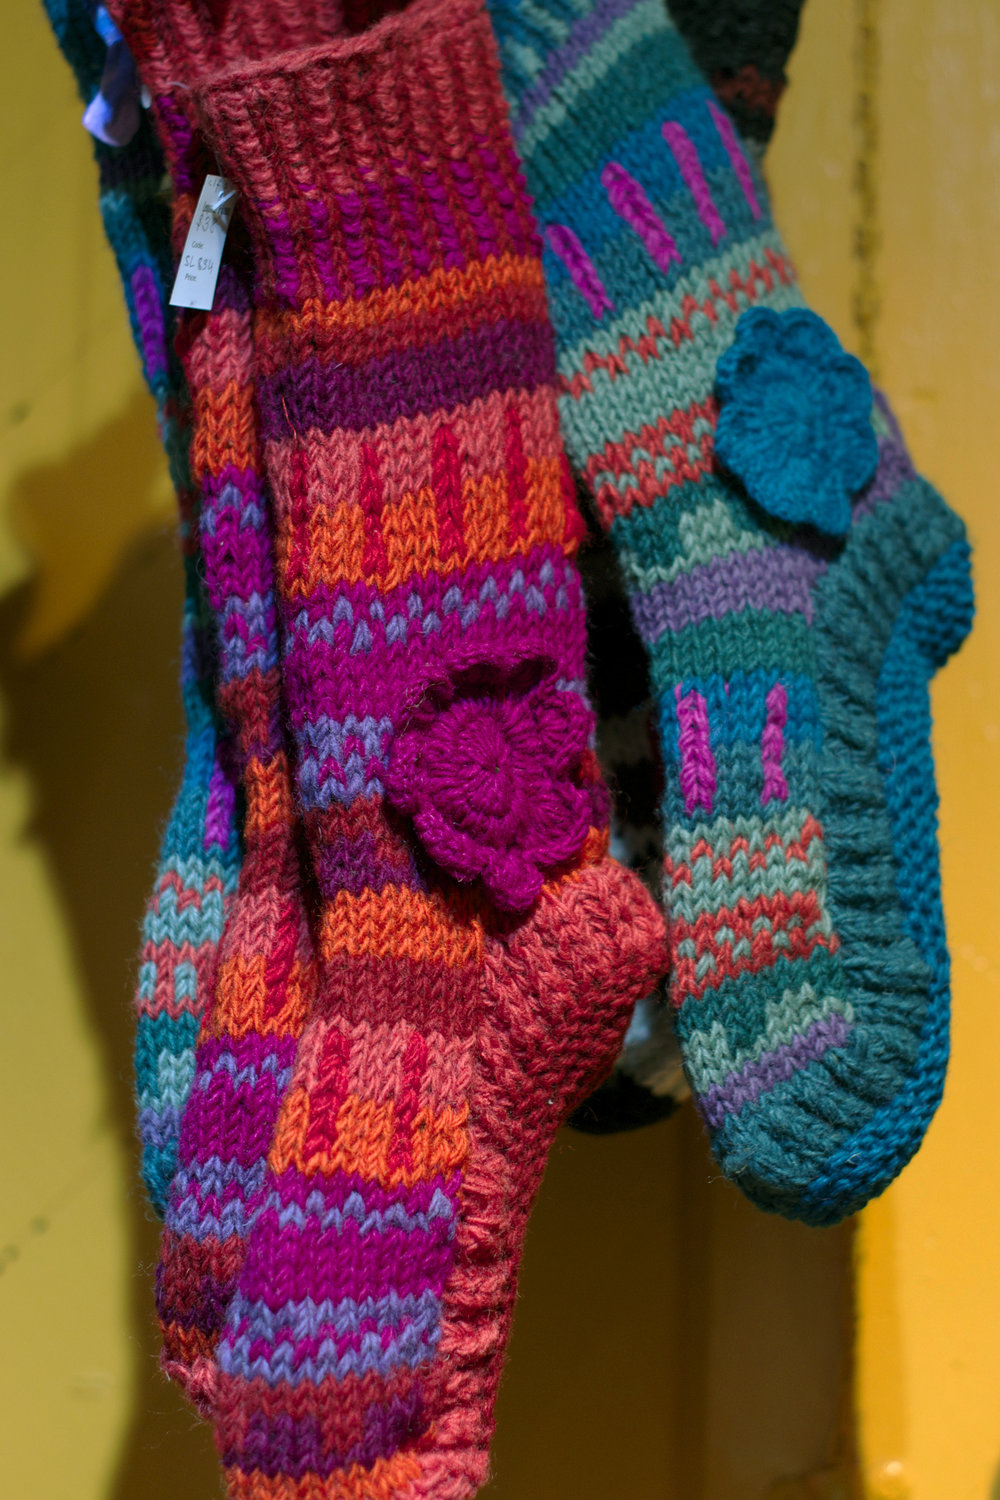 colourful-knit-socks.jpg